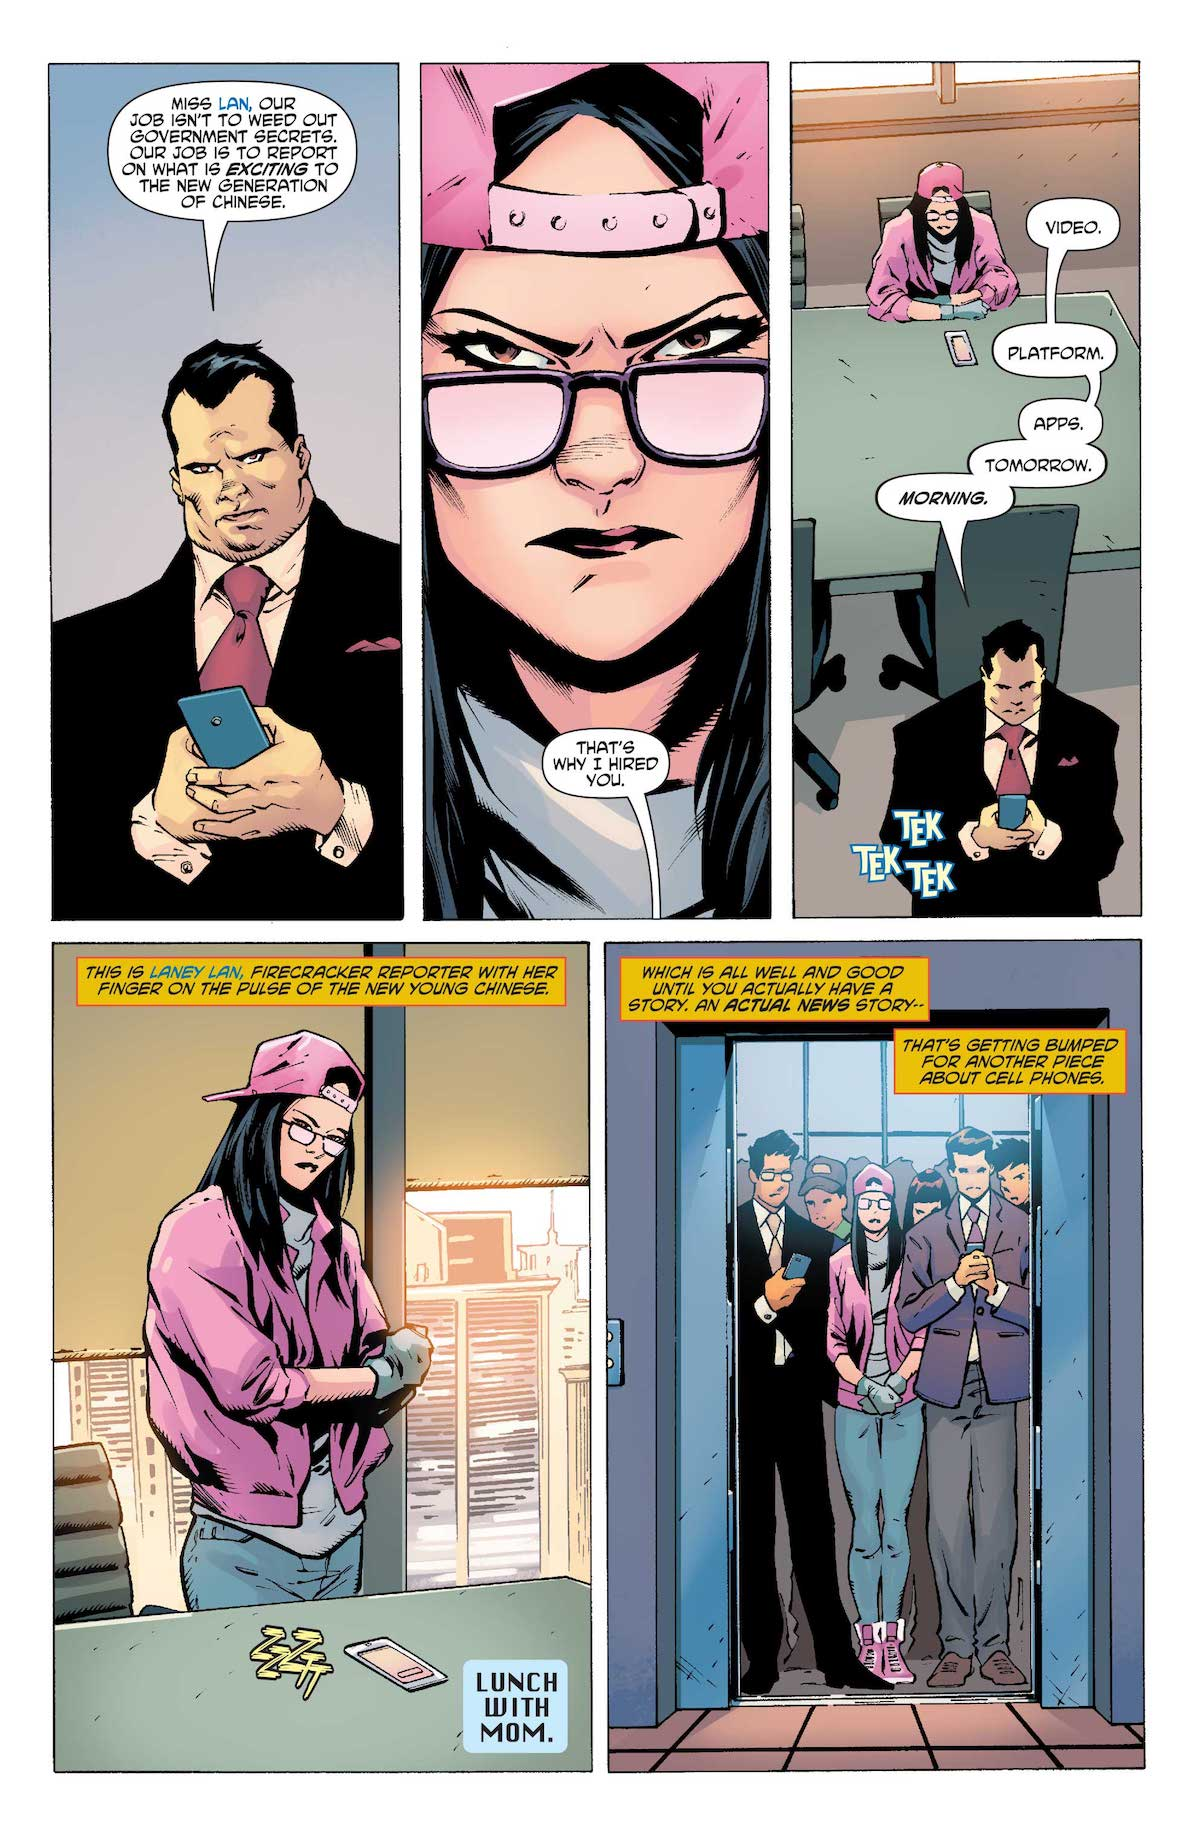 New Super-Man #19 interior page Laney Lan